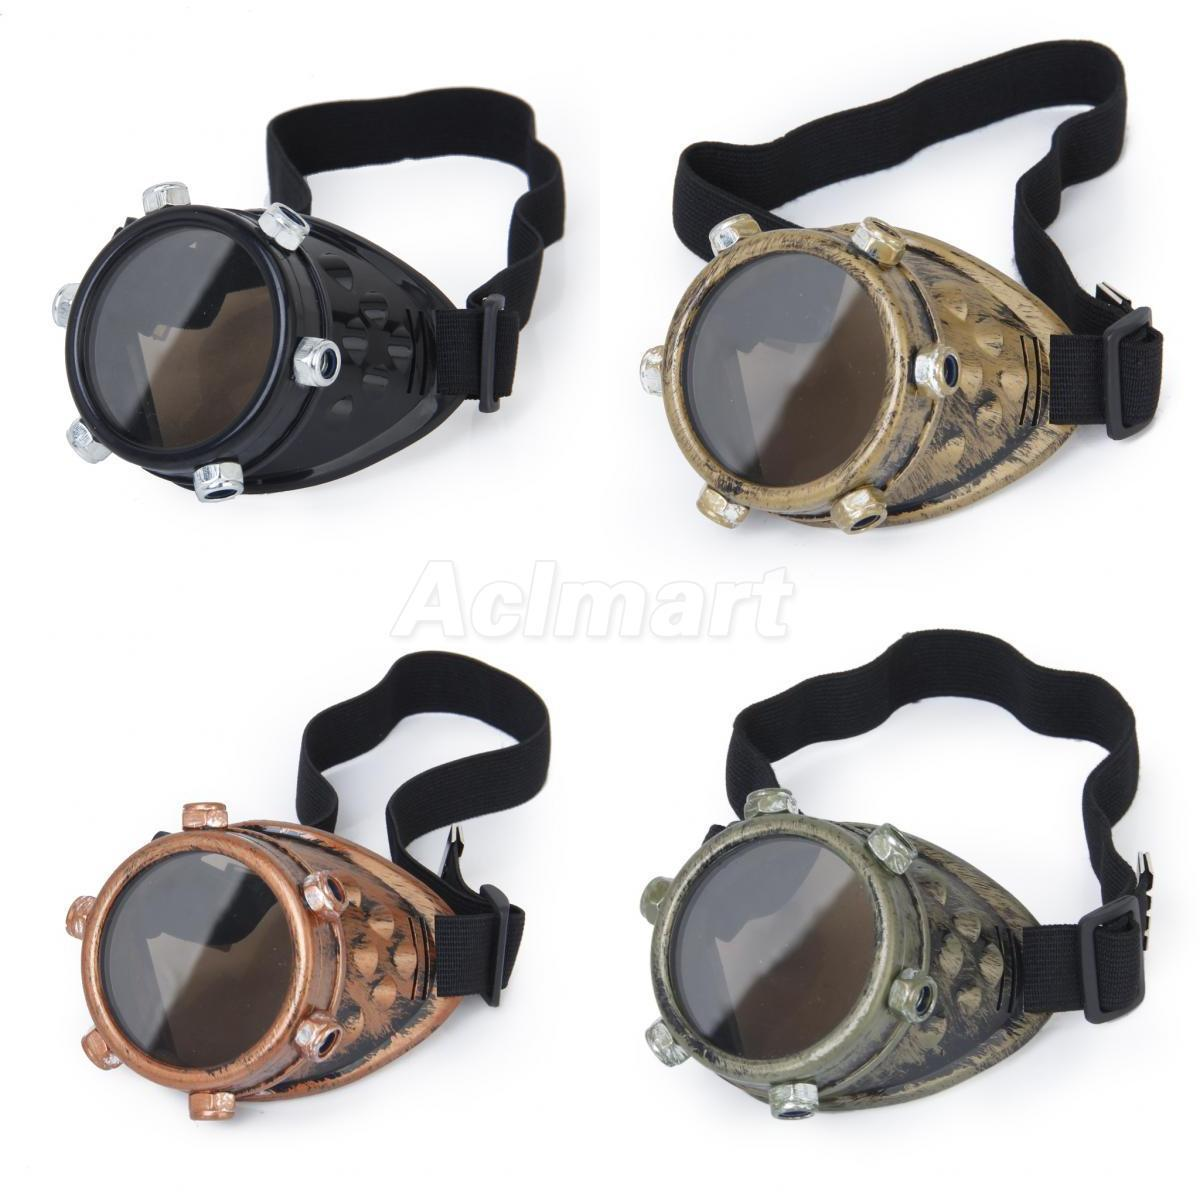 How to Make Cybergoth Goggles photo